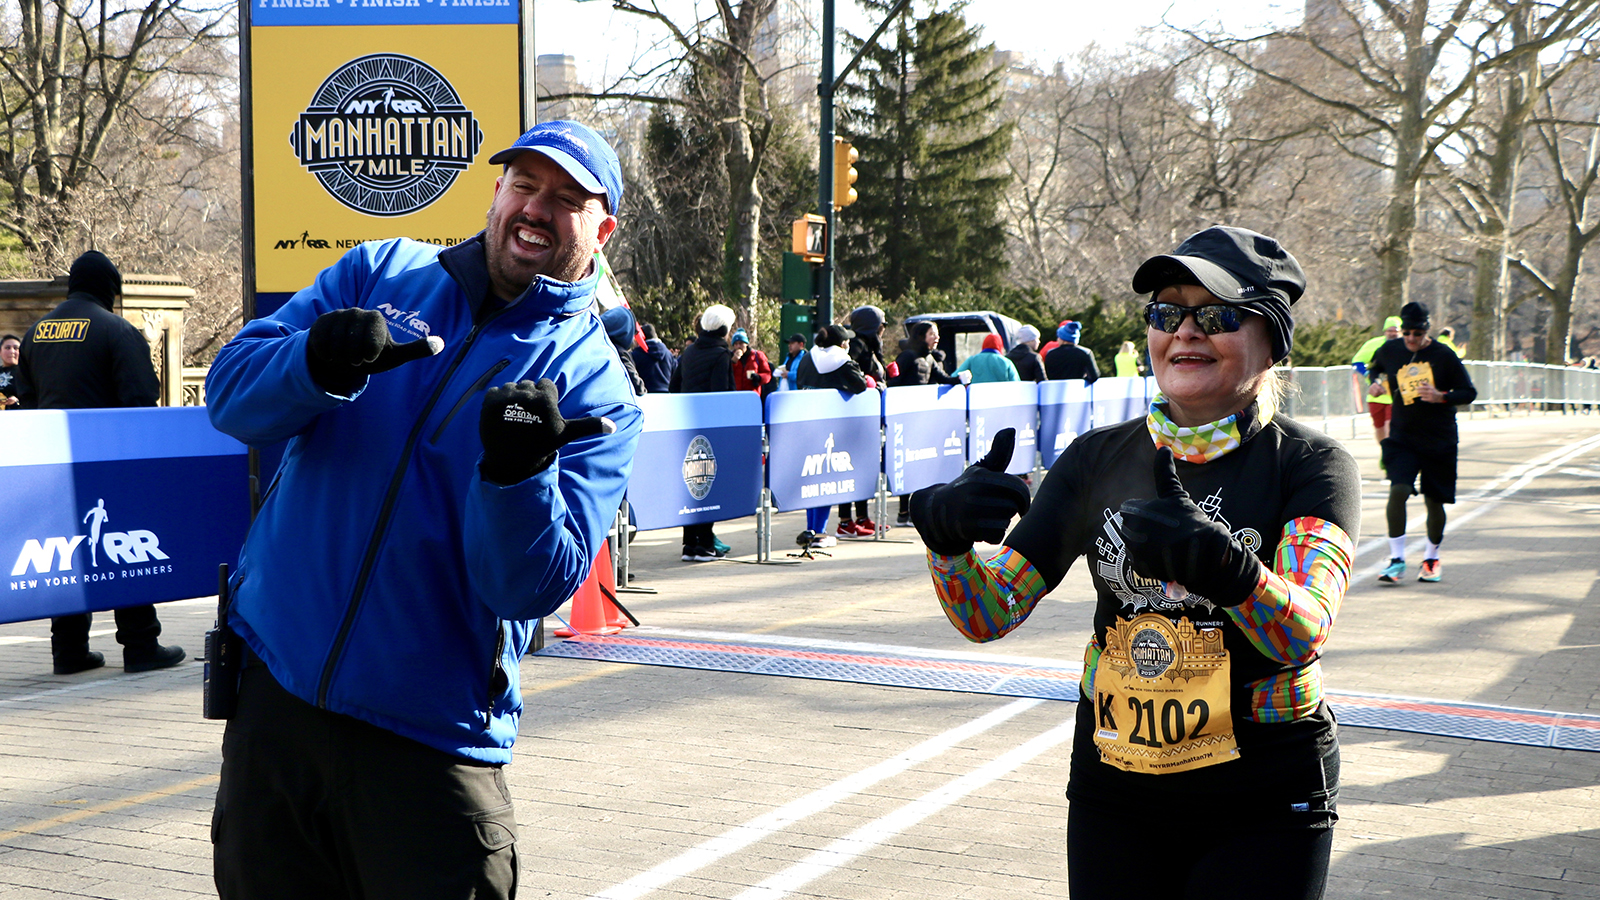 NYRR's Jim Heim with a runner at the finish line of the NYRR Manhattan 7 Mile